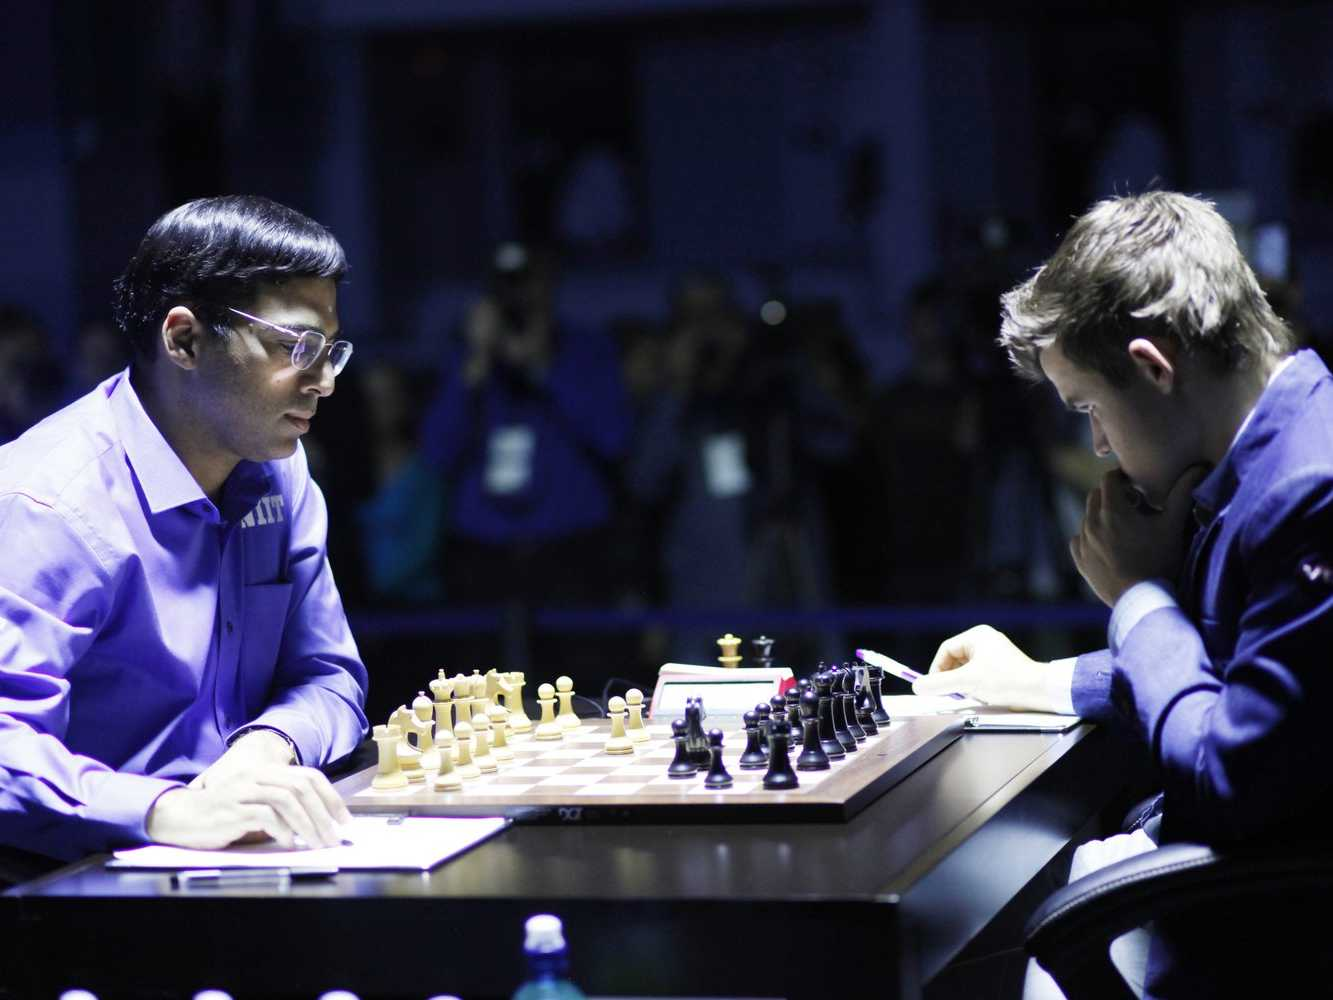 the-stage-is-set-for-an-epic-finish-at-the-world-chess-championship